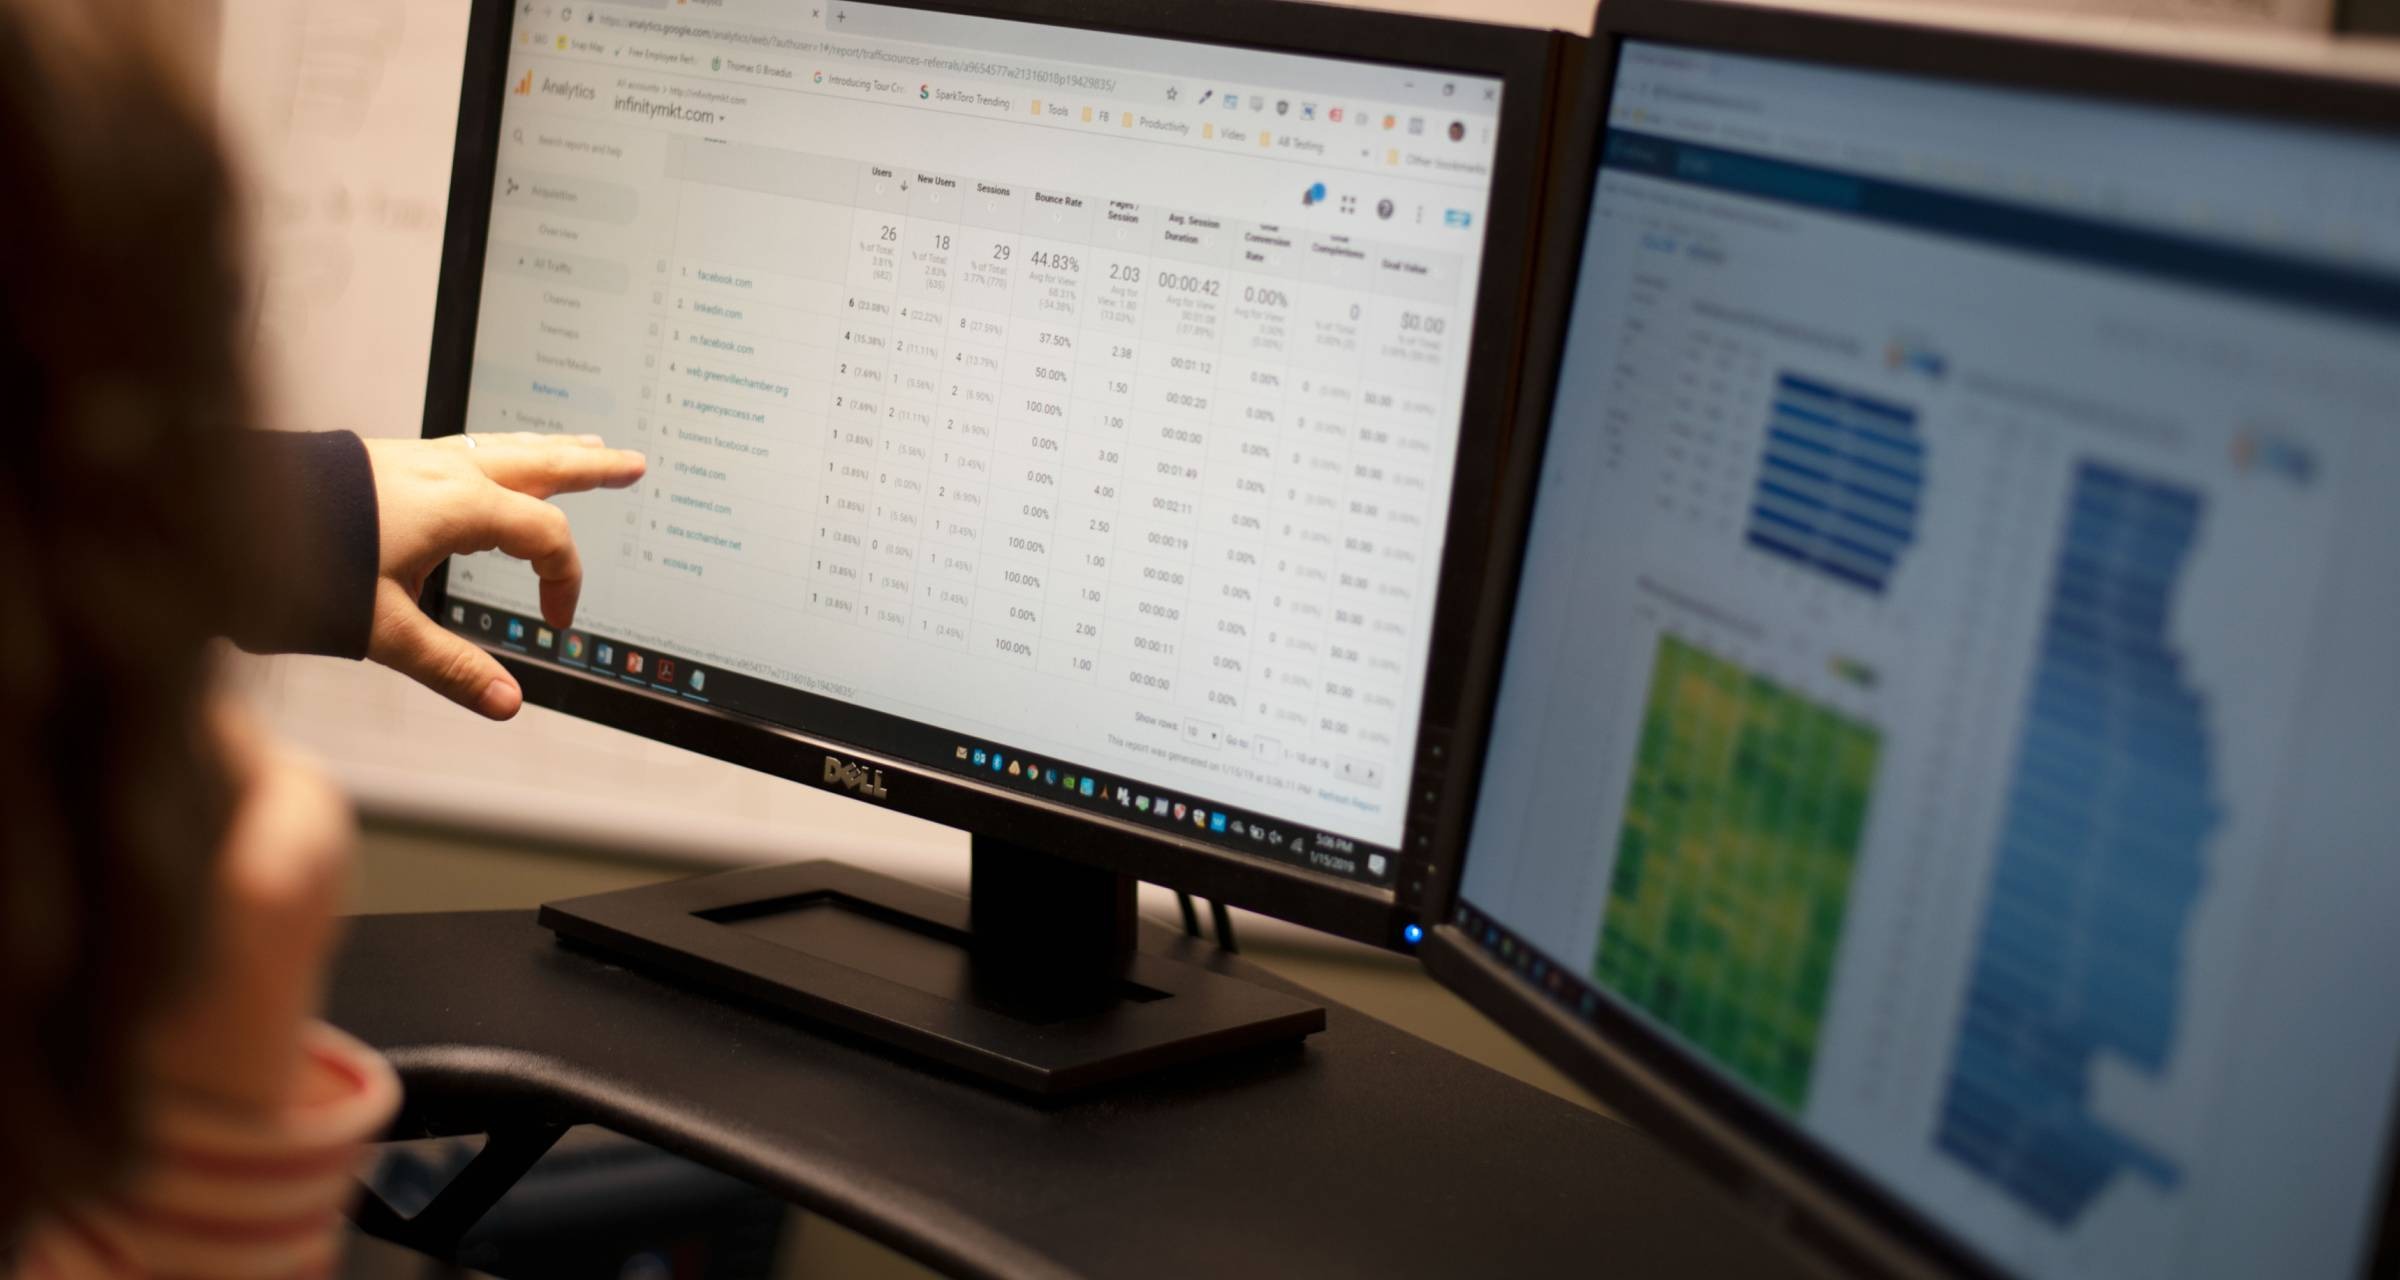 tindall-data-management-and-naming-conventions-analytics-computer-screens